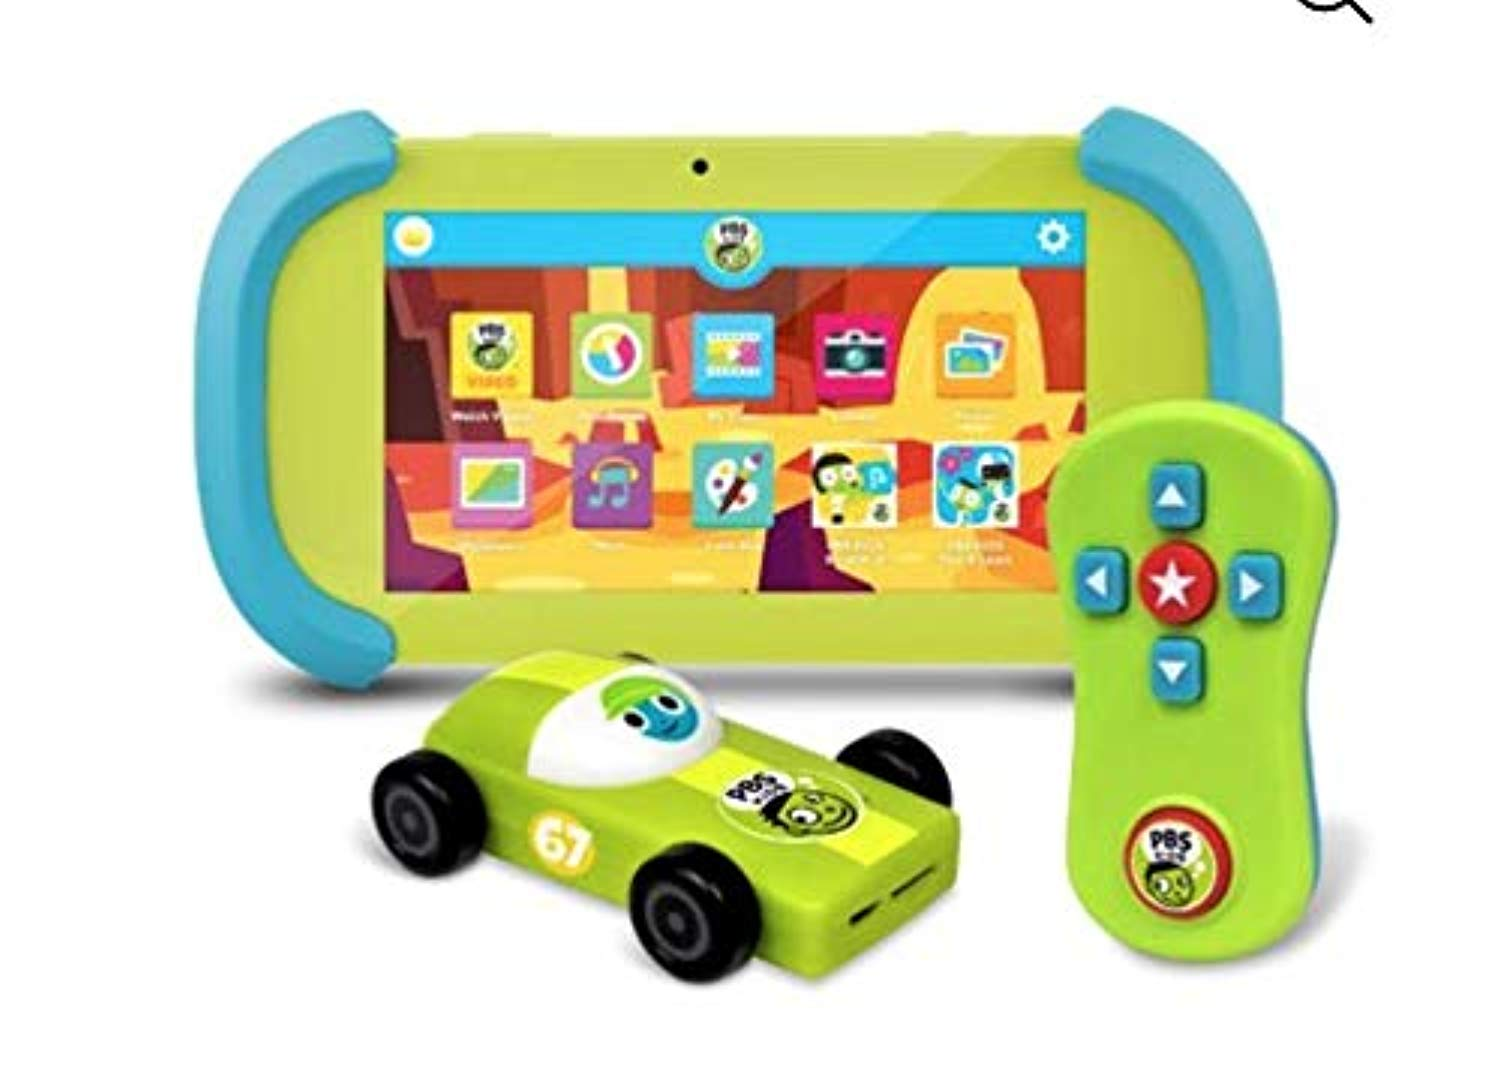 Ematic PBS Playtime Pad 7 HD w// Plug and Play Streaming Stick